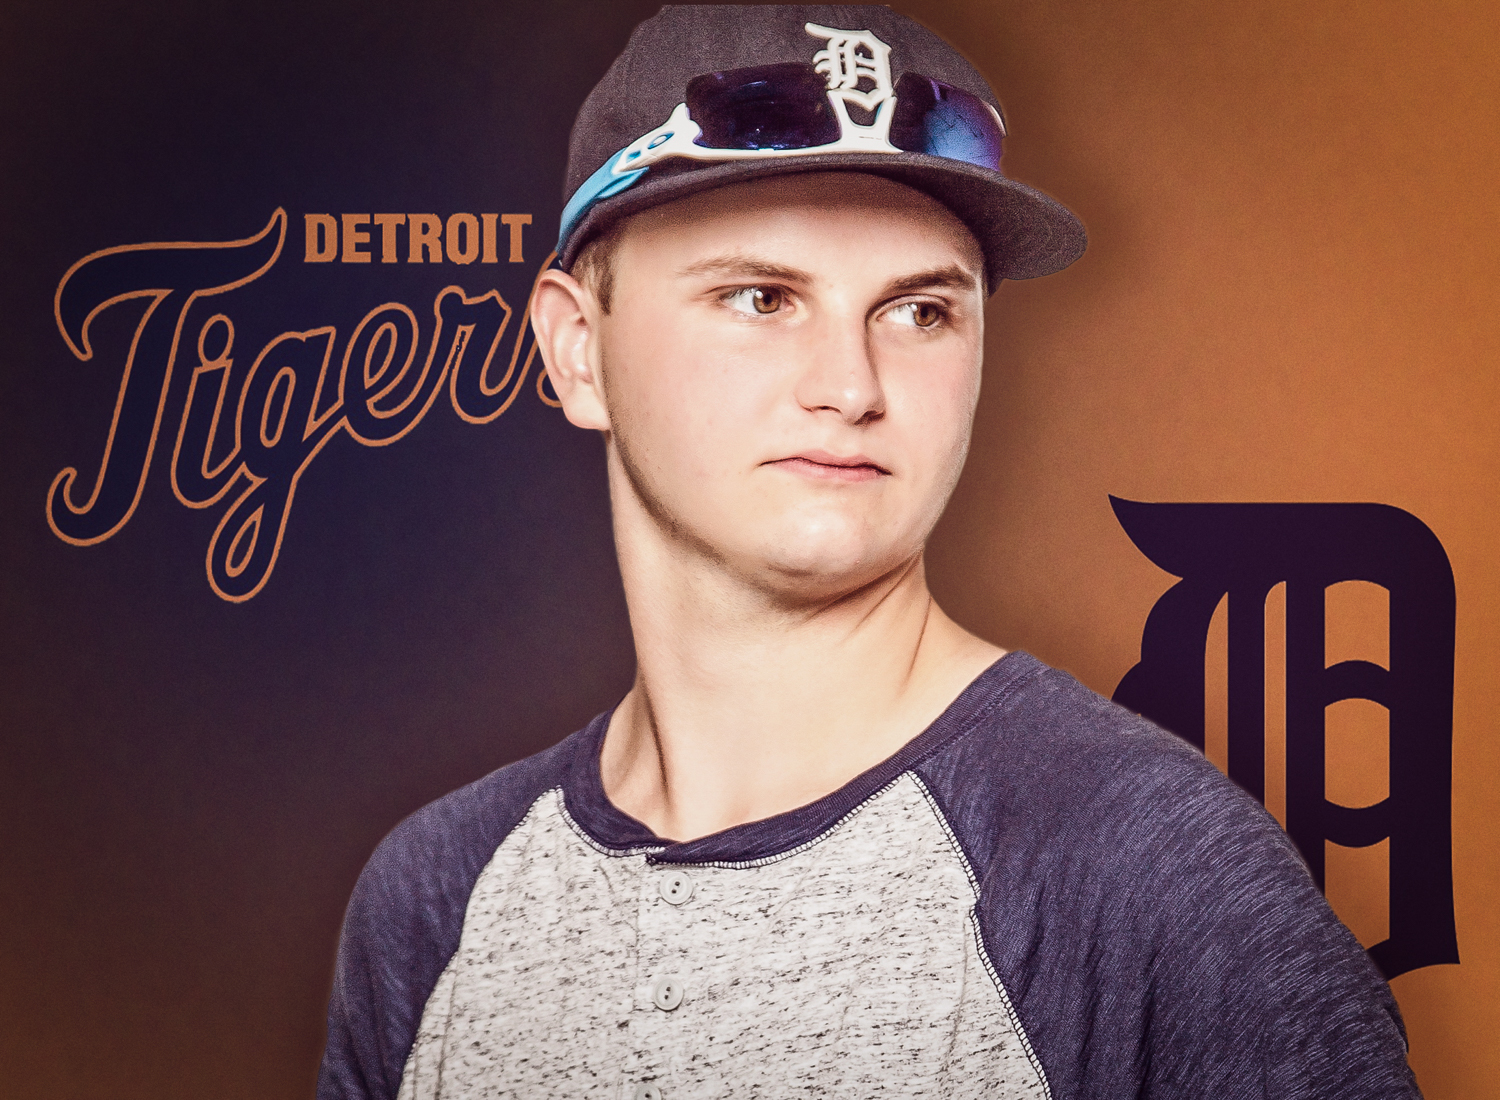 Portrait-HIgh-School-Seniors-Portrait-High-School-boy-with-Detroit-Tigers-cap-232.jpg